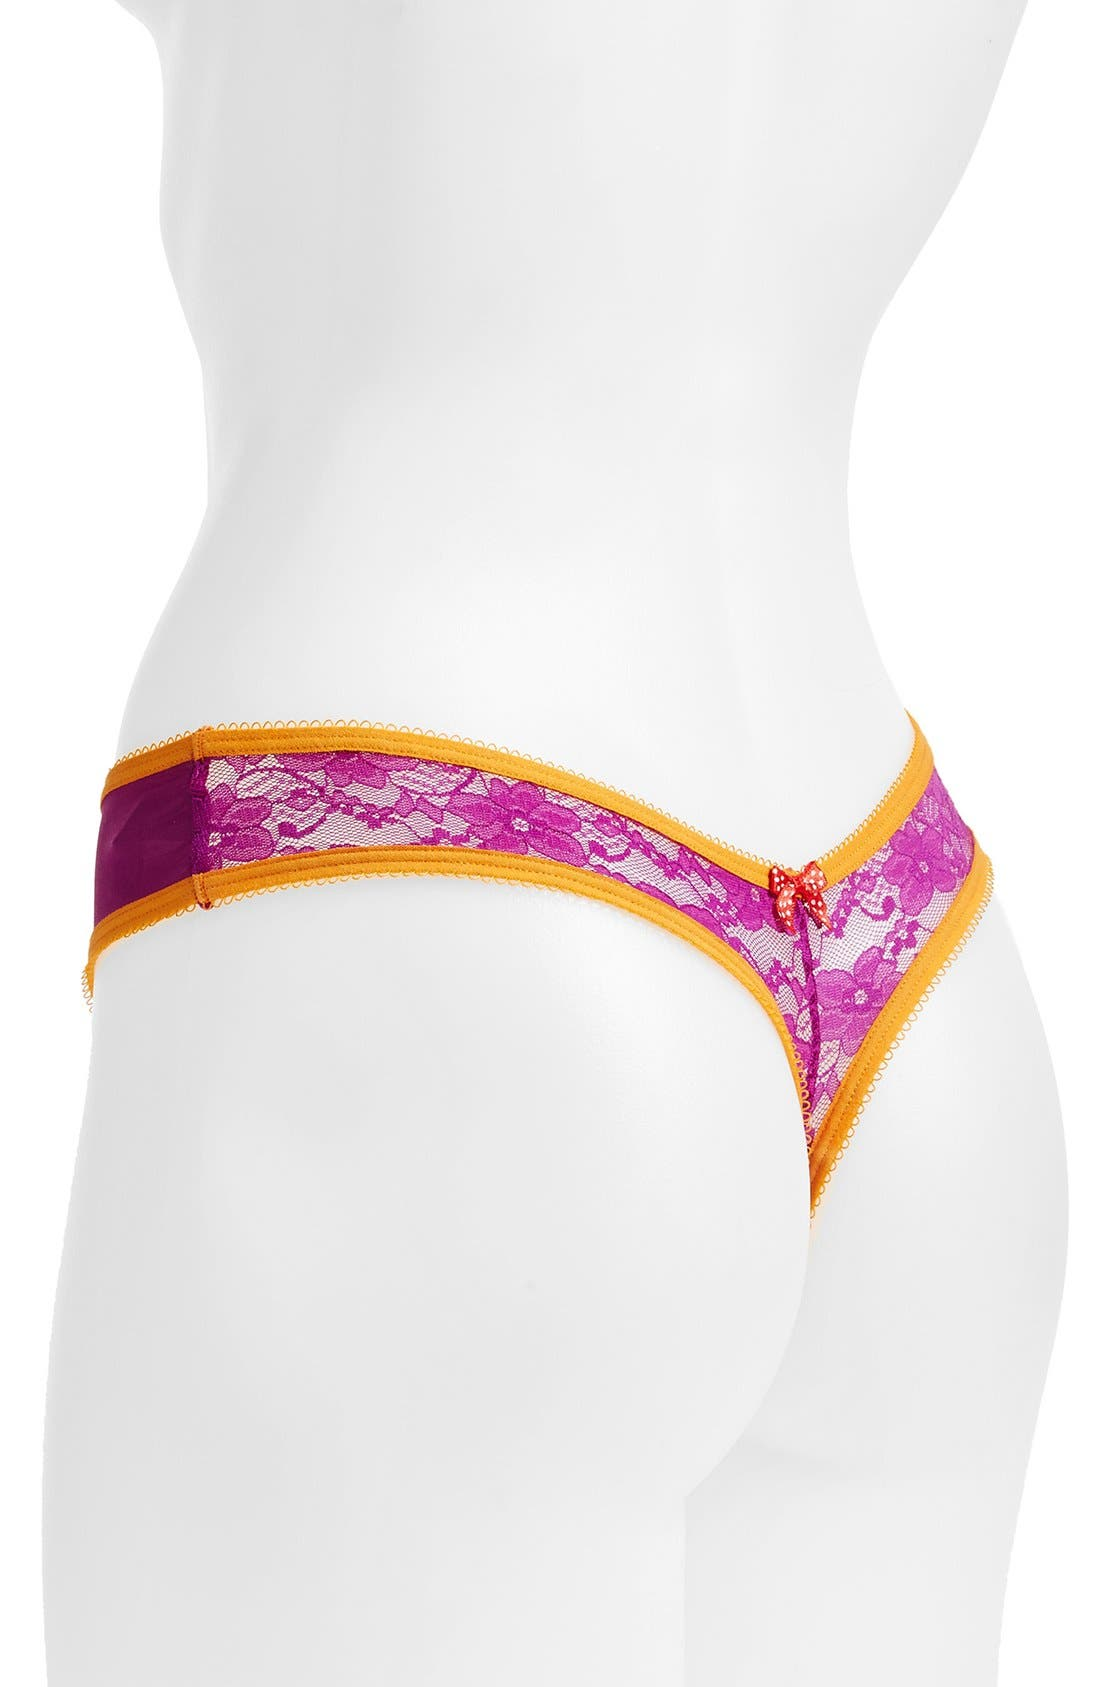 Alternate Image 2  - Josie 'Addictive' Low Rise Lace Back Thong (3 for $30)